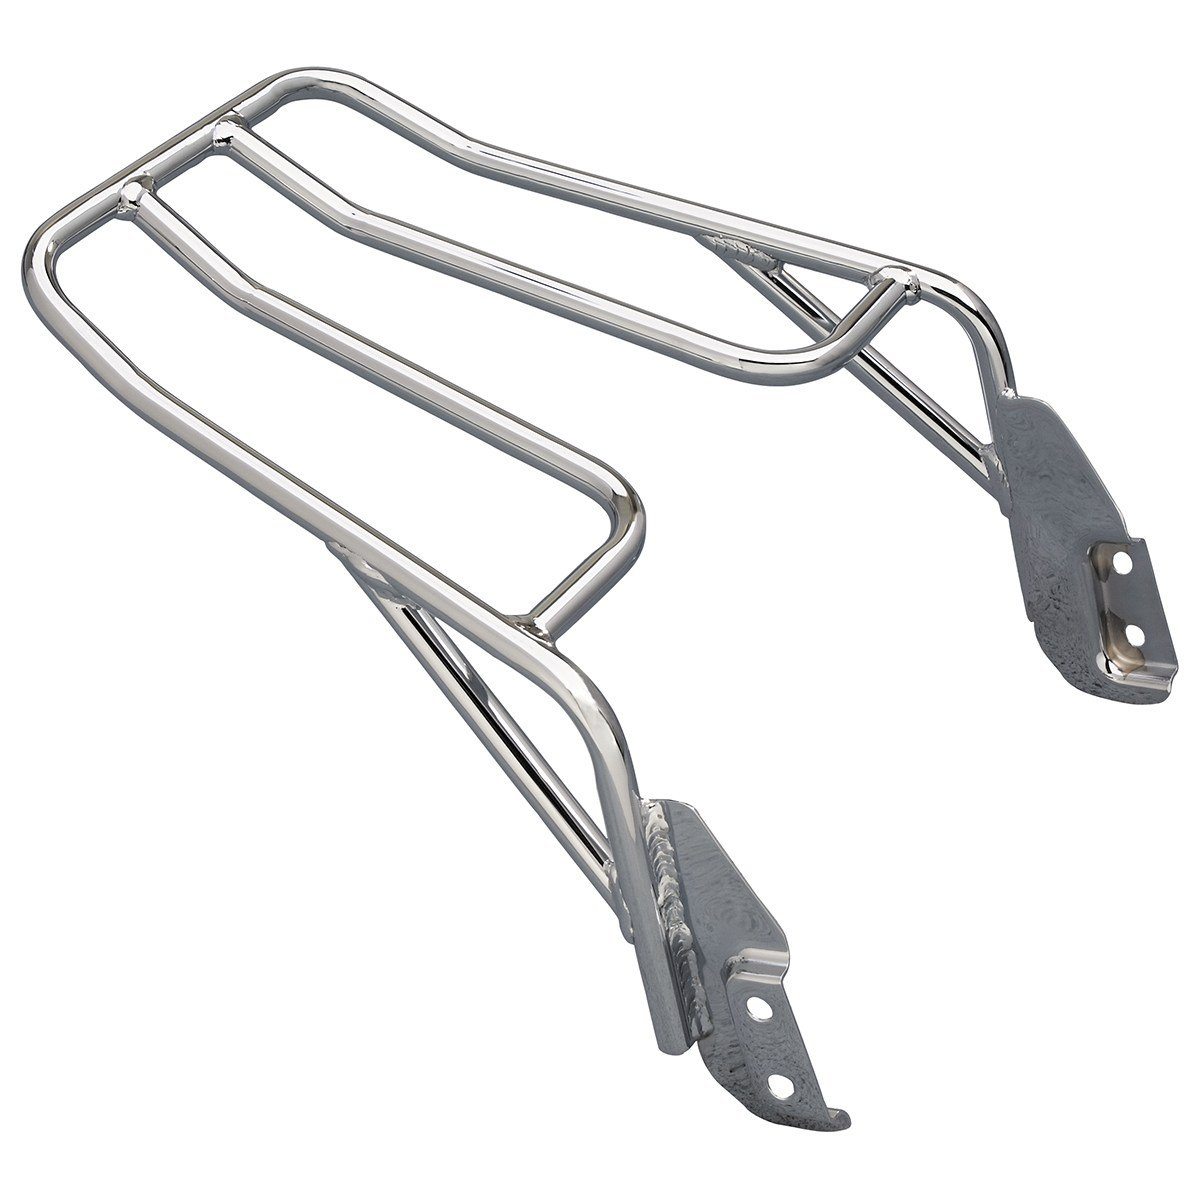 Yamaha STR-3D851-30-00 Tourer Rear Luggage Rack V-Star 1300